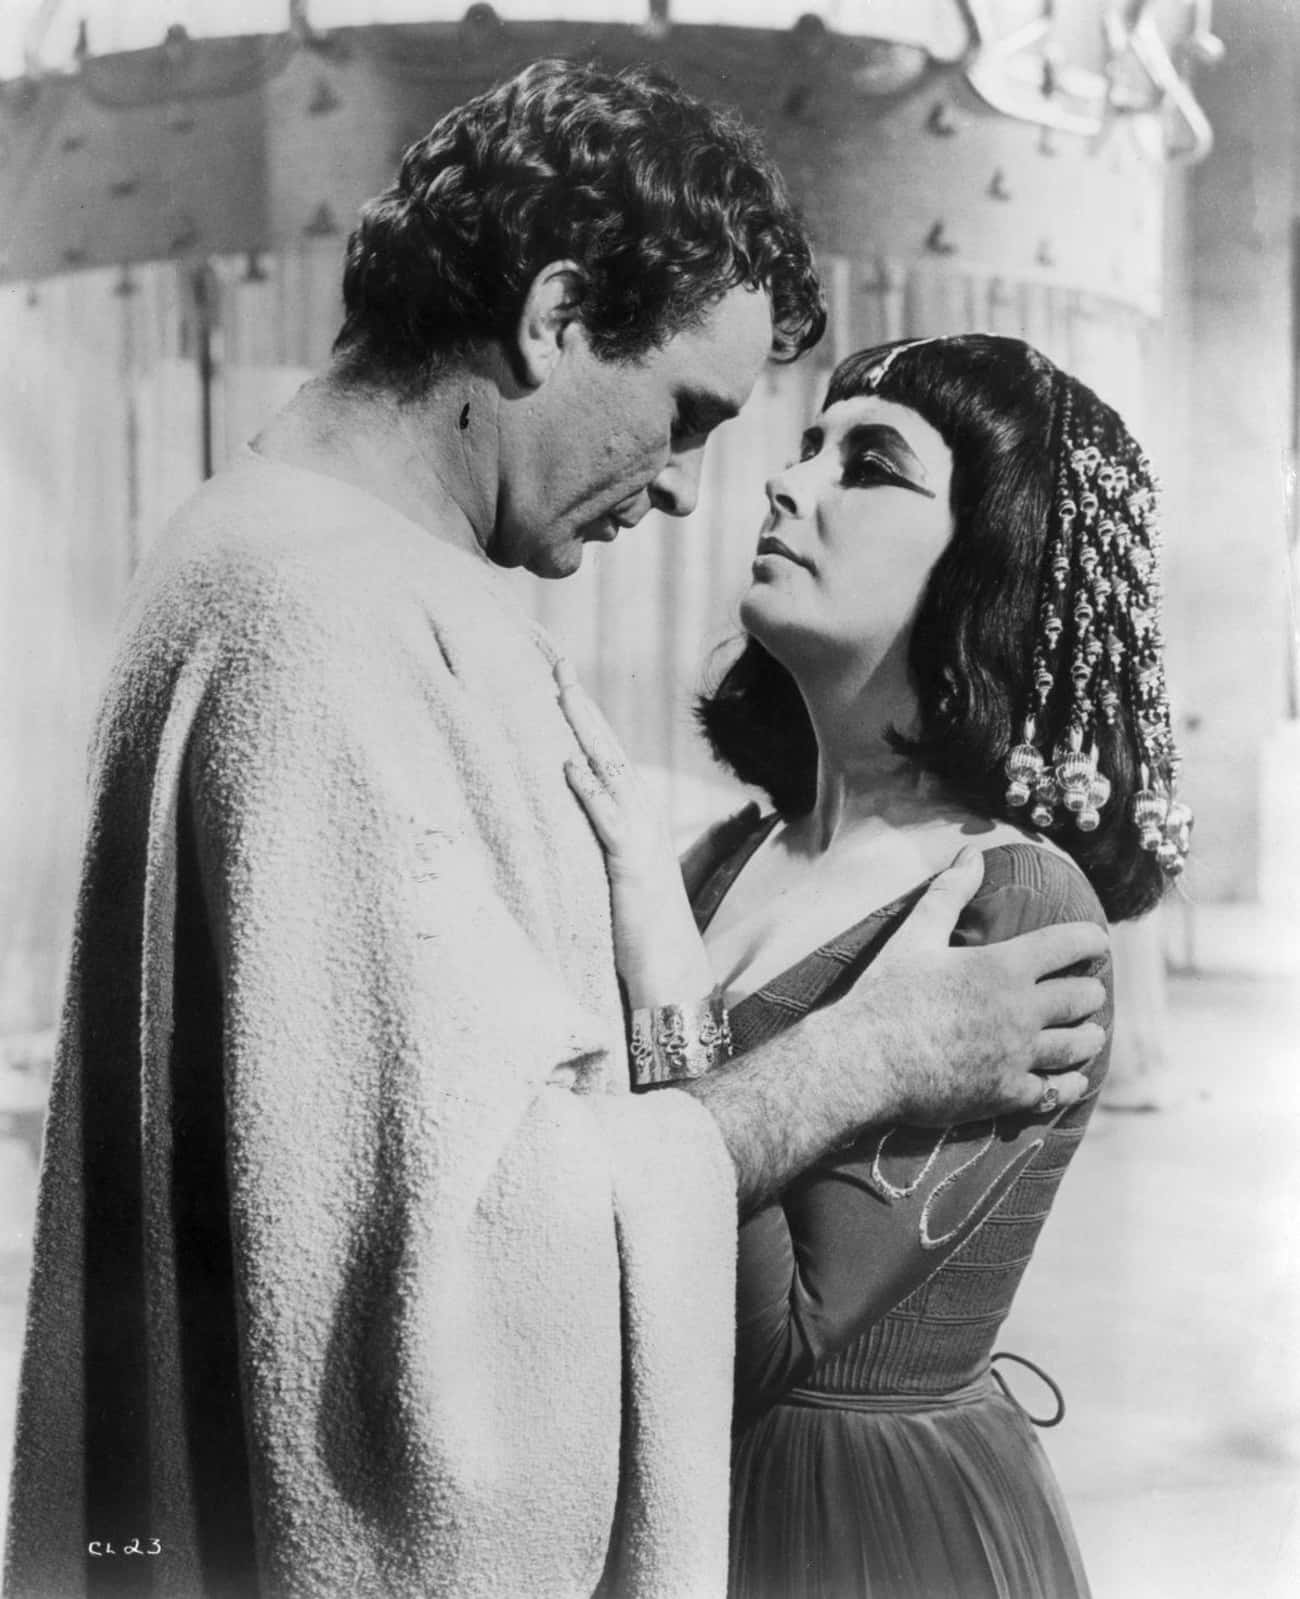 Cleopatra - Richard Burton & E is listed (or ranked) 1 on the list Movies That Sparked Off-Screen Celebrity Romances